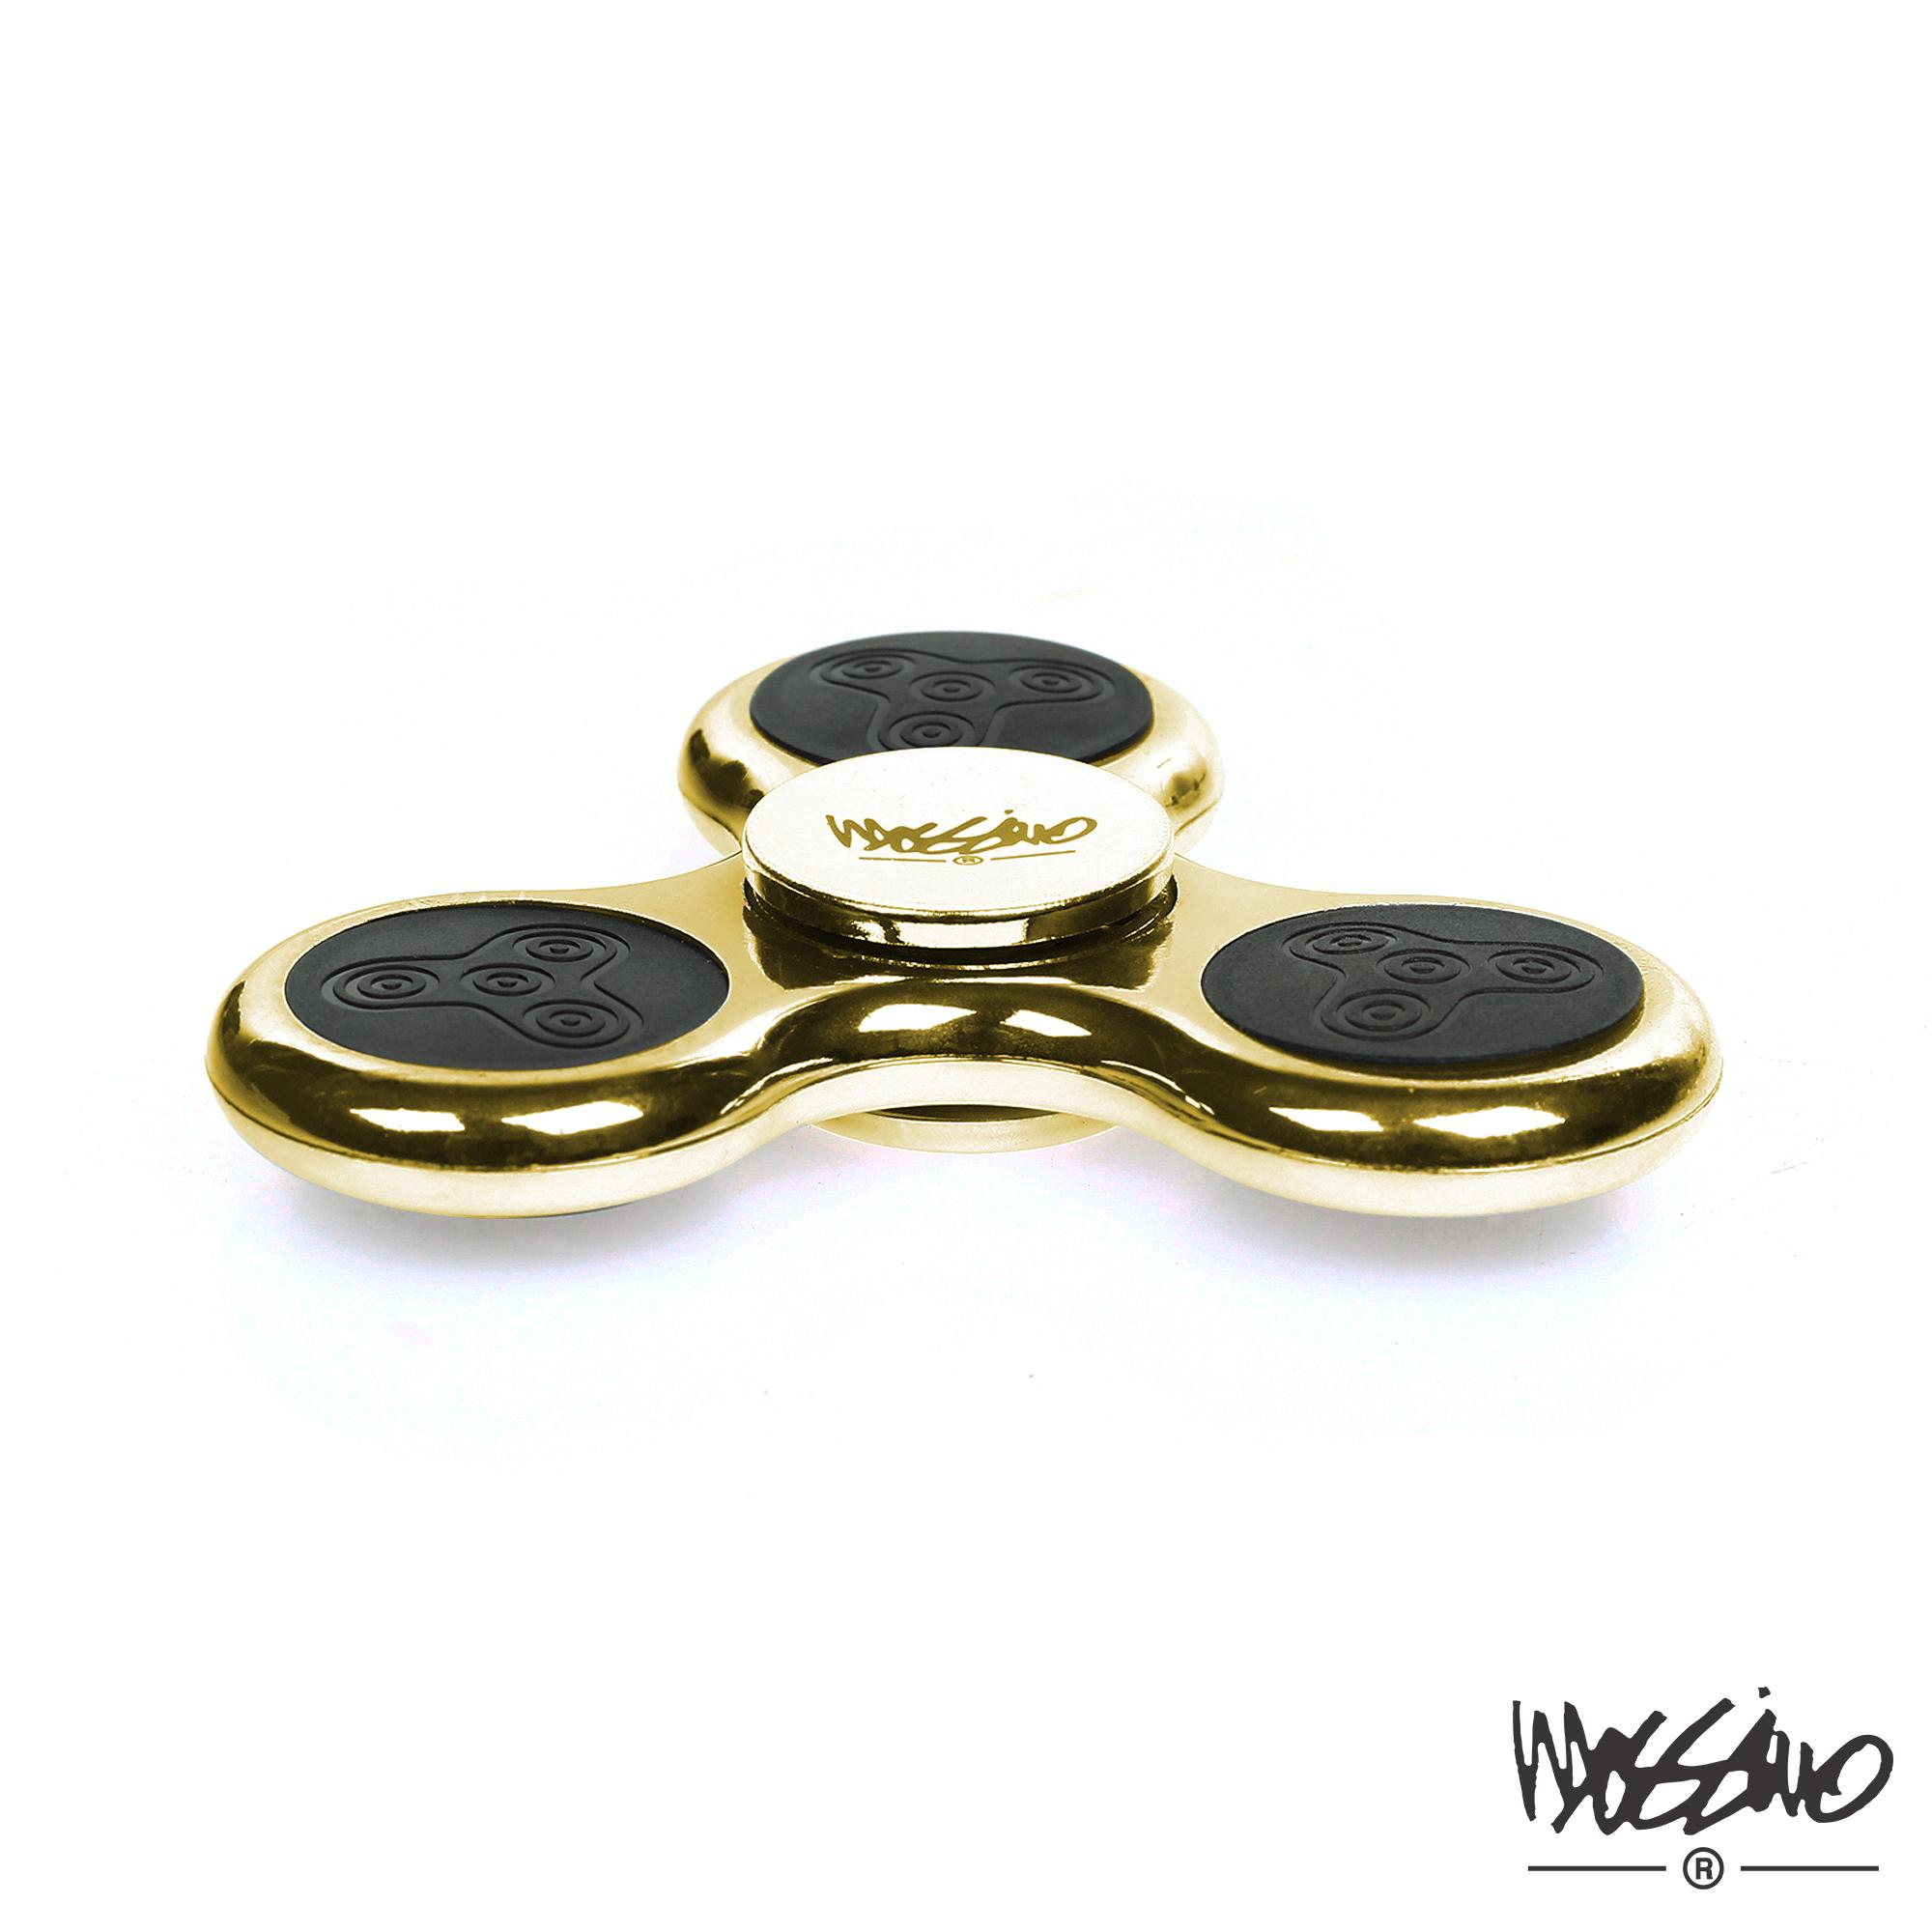 Fidget Spinners For Sale Fidget Toy Online Brands Prices